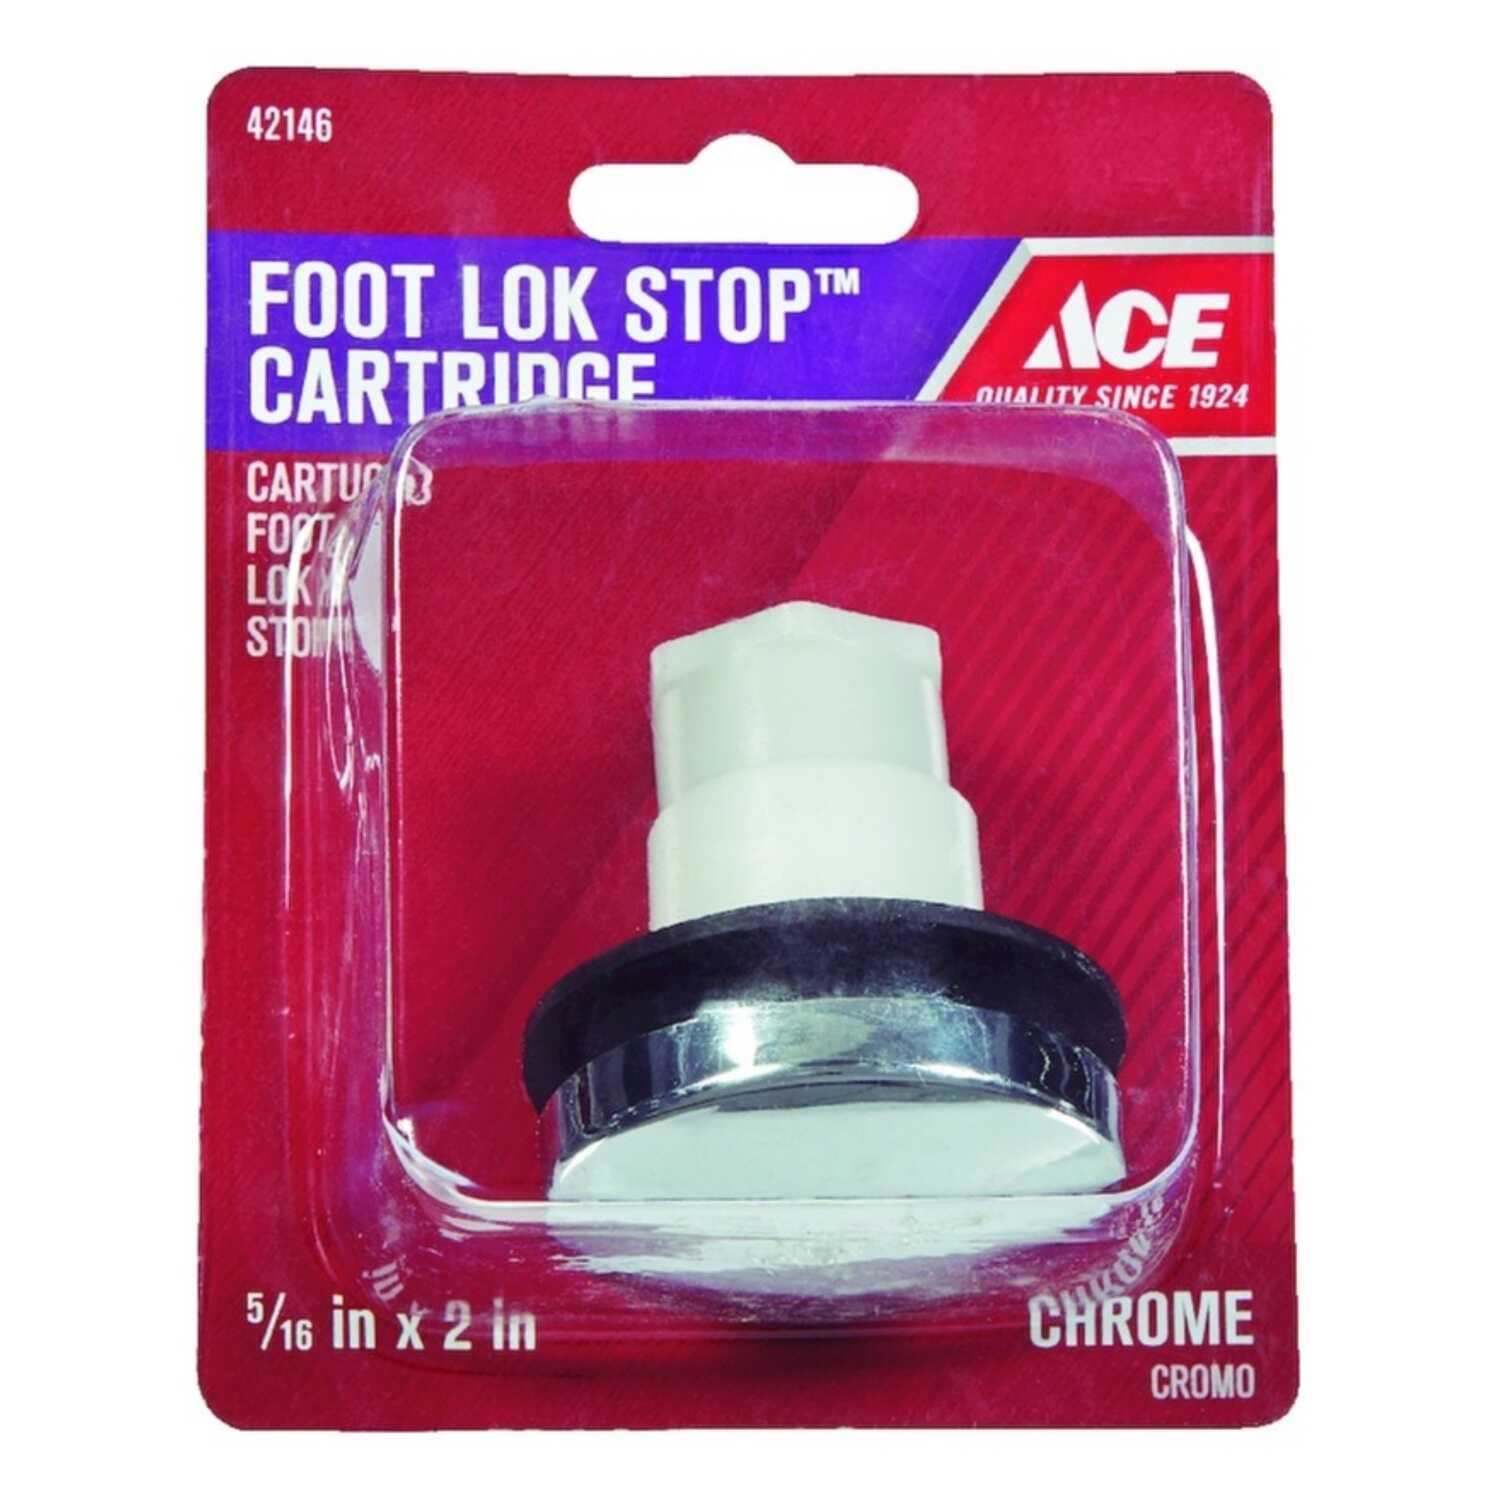 Ace  Foot Lok Stop Cartridge  5/16 in. Dia. Polished Chrome  Plastic  Tub Stopper